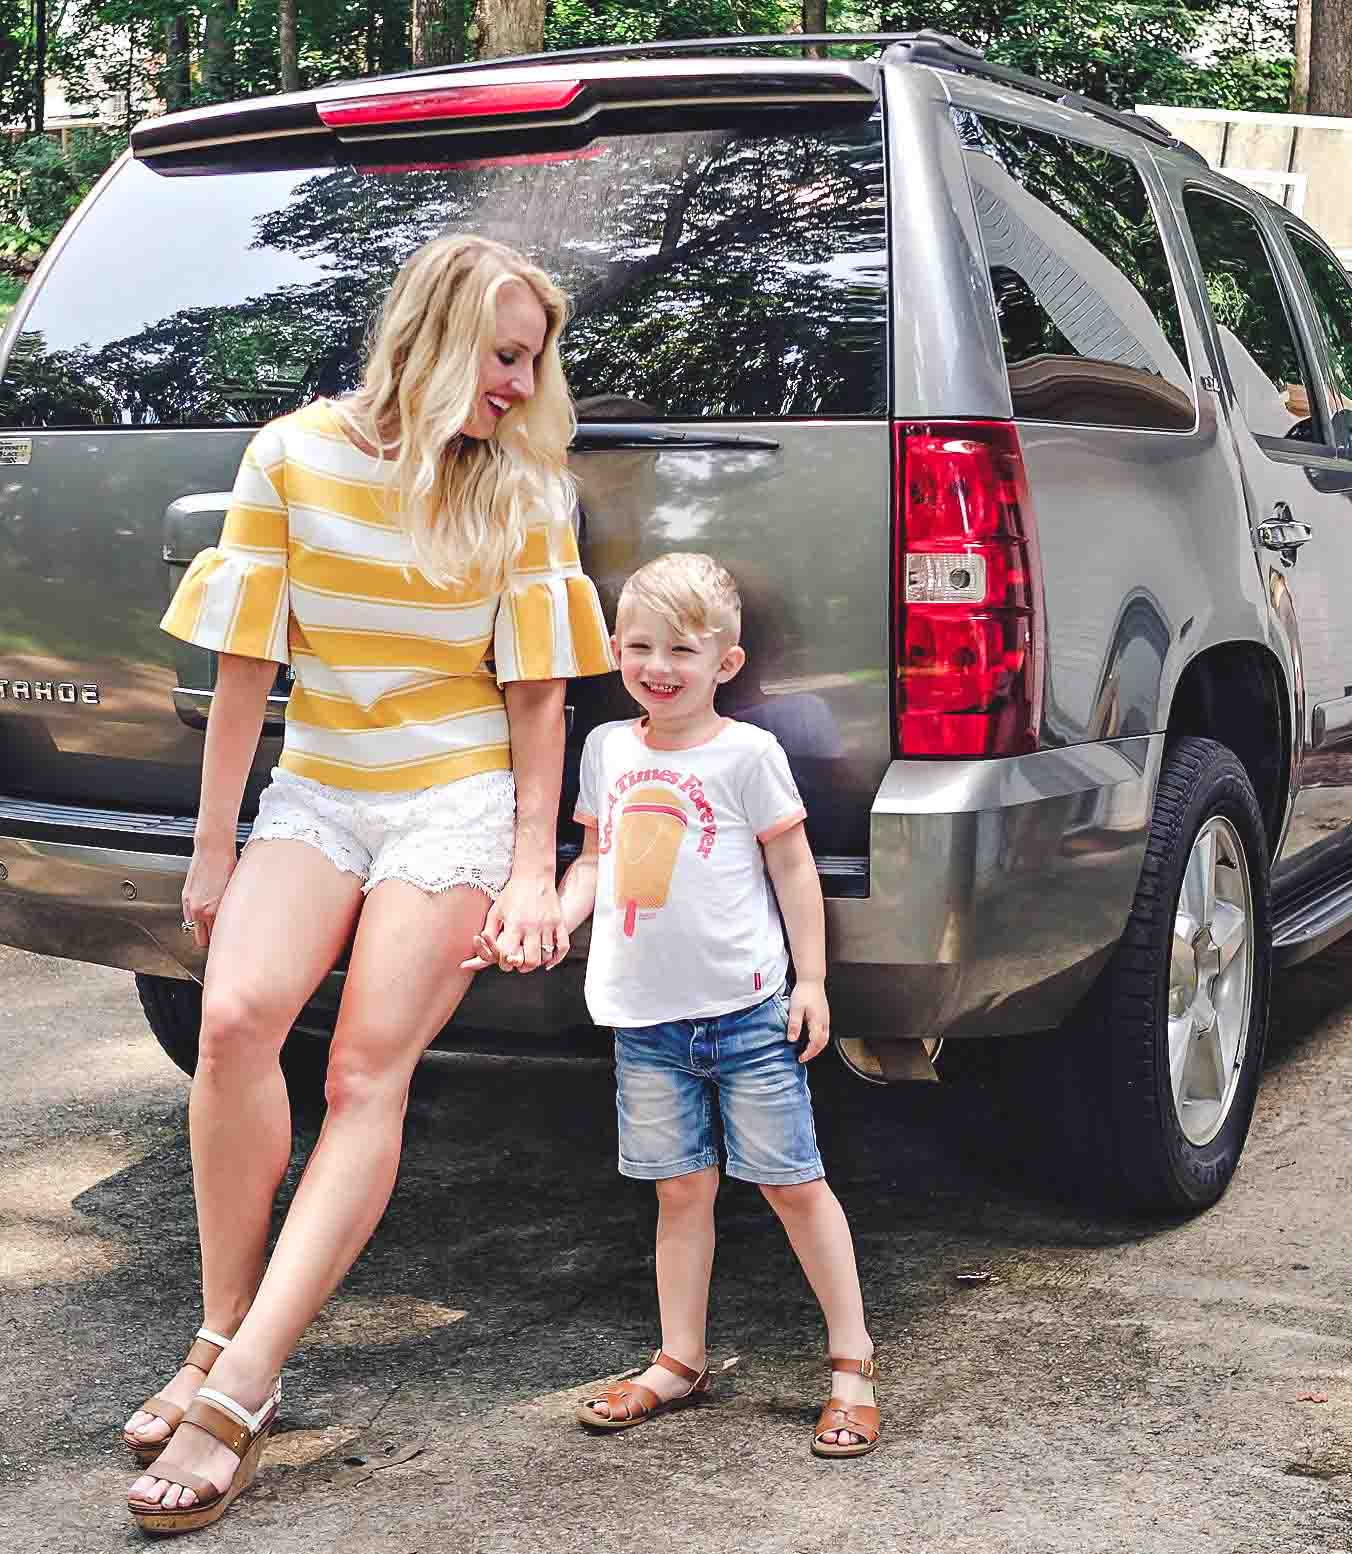 Road Trip Checklist for Kids 4 and Under by popular Atlanta blogger Happily Hughes